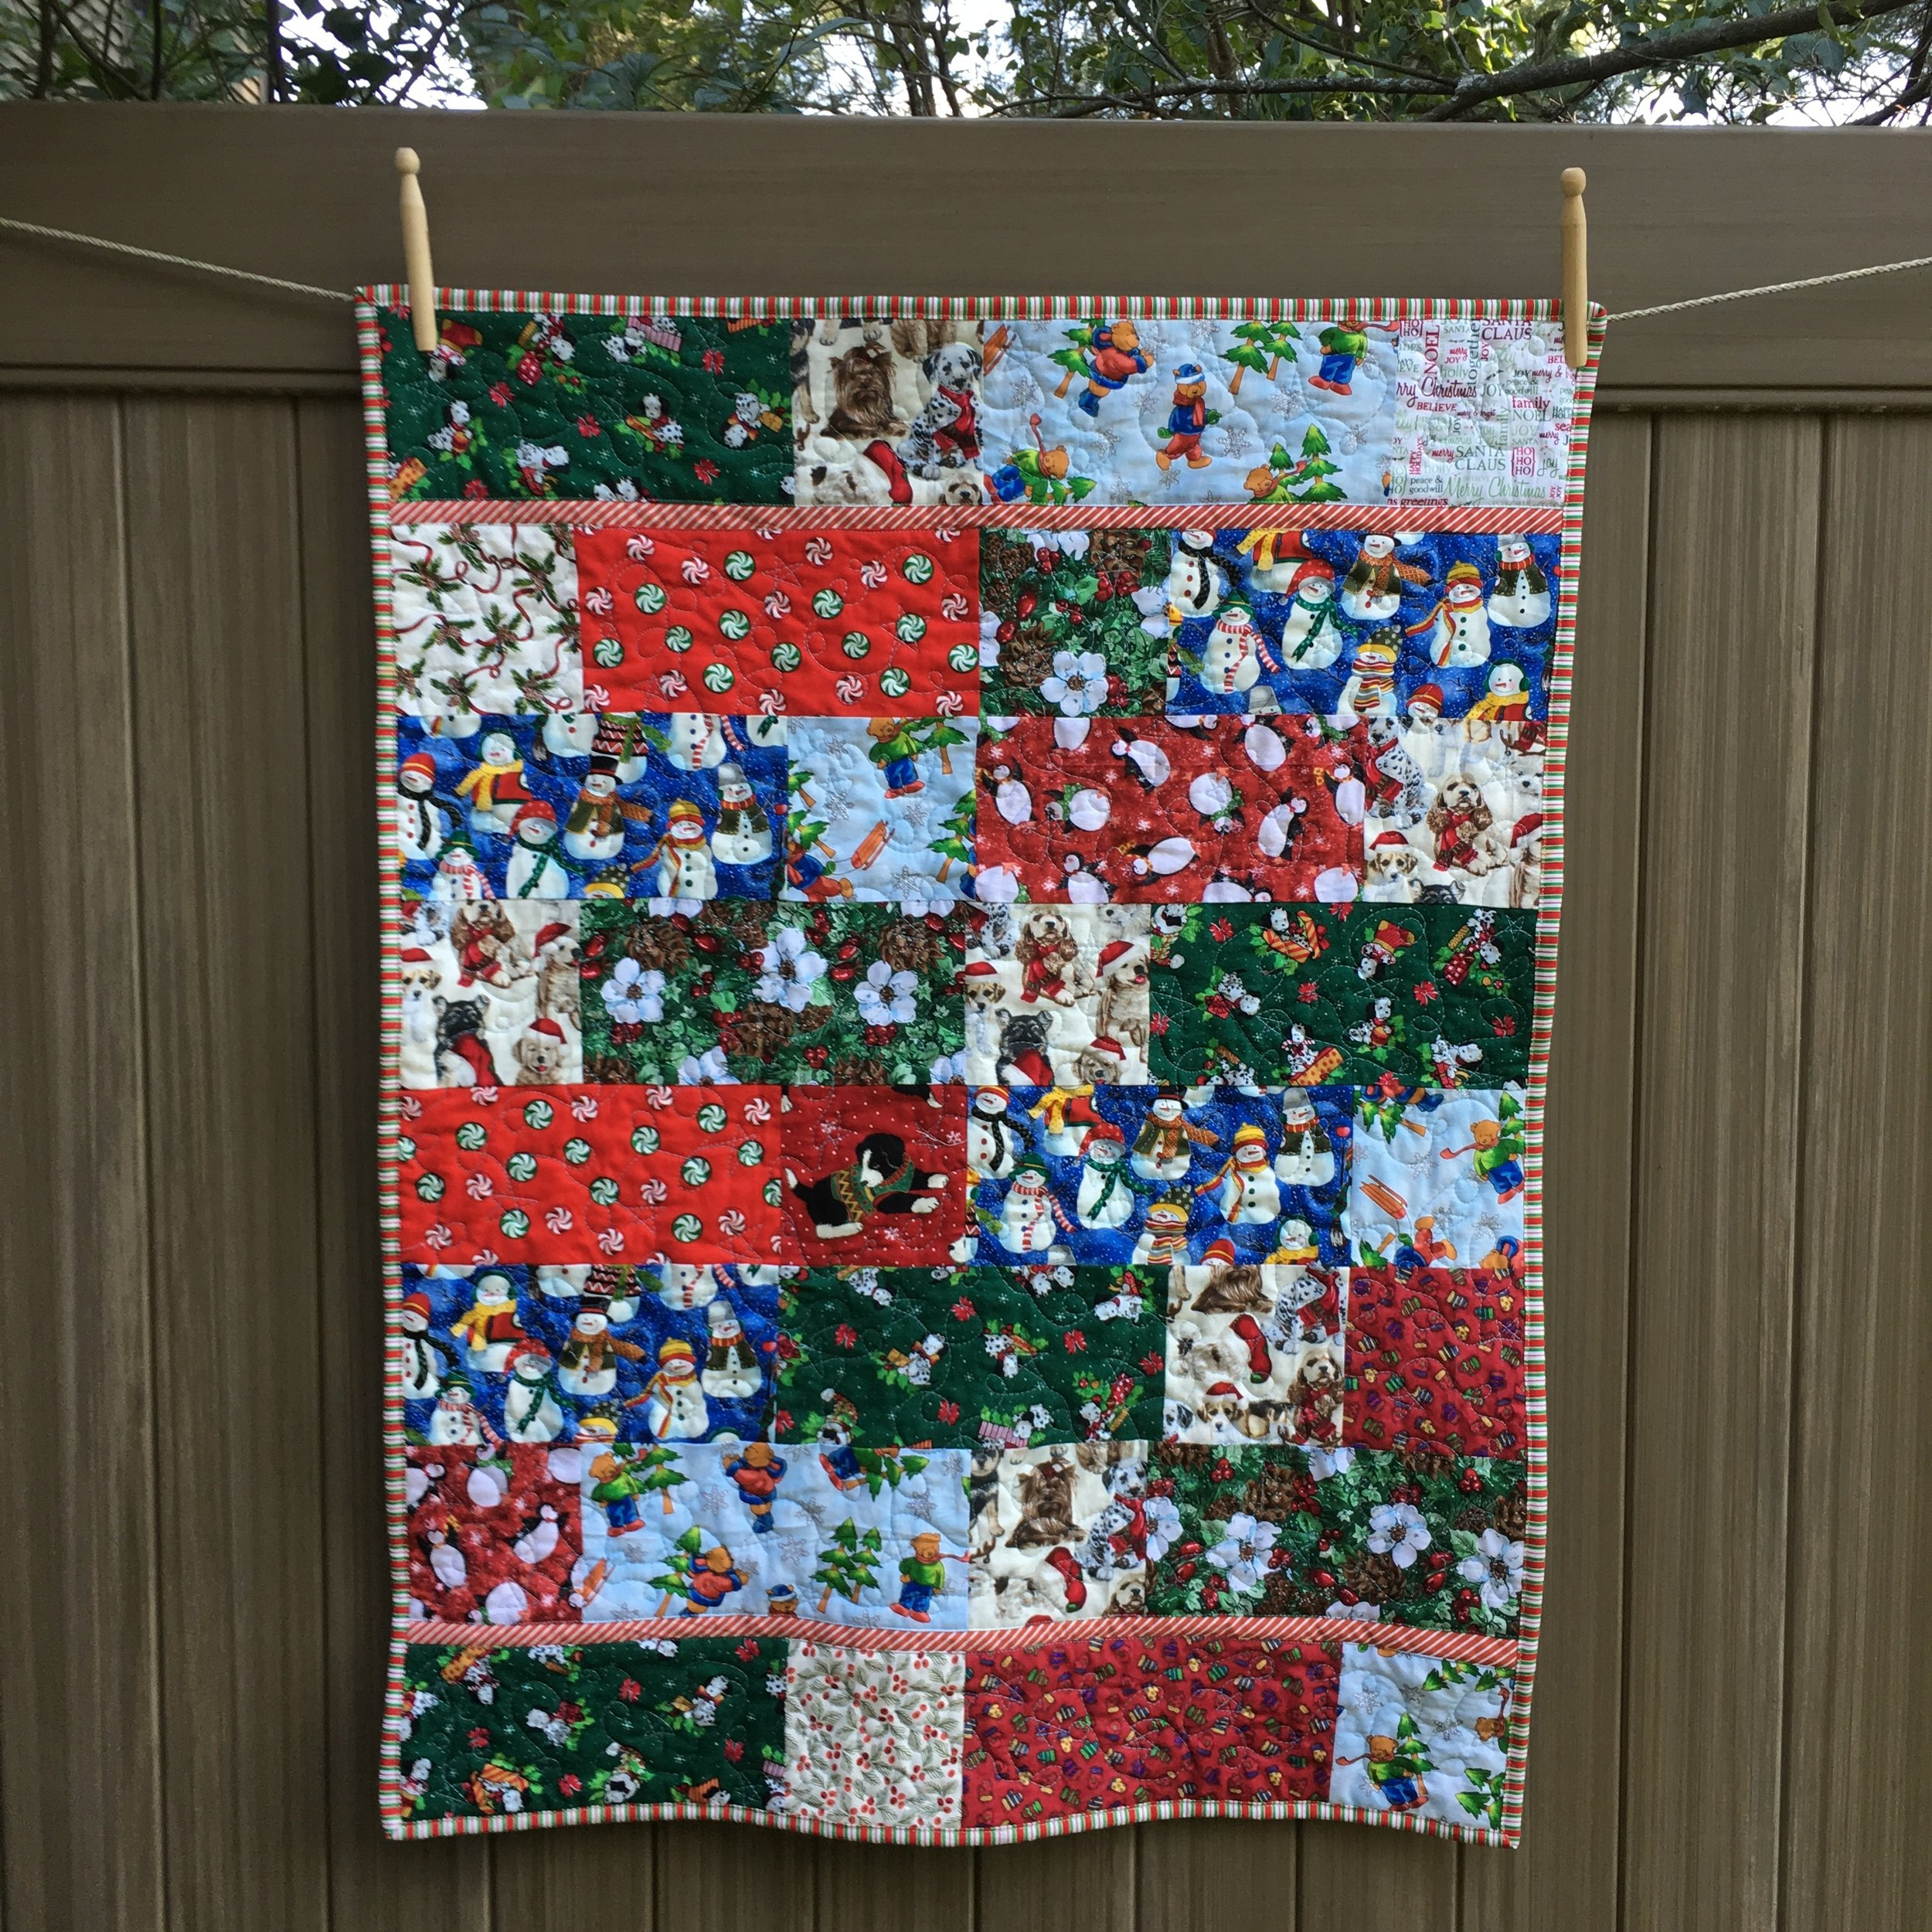 Bricks and Squares Quilt  28 x 36 inches